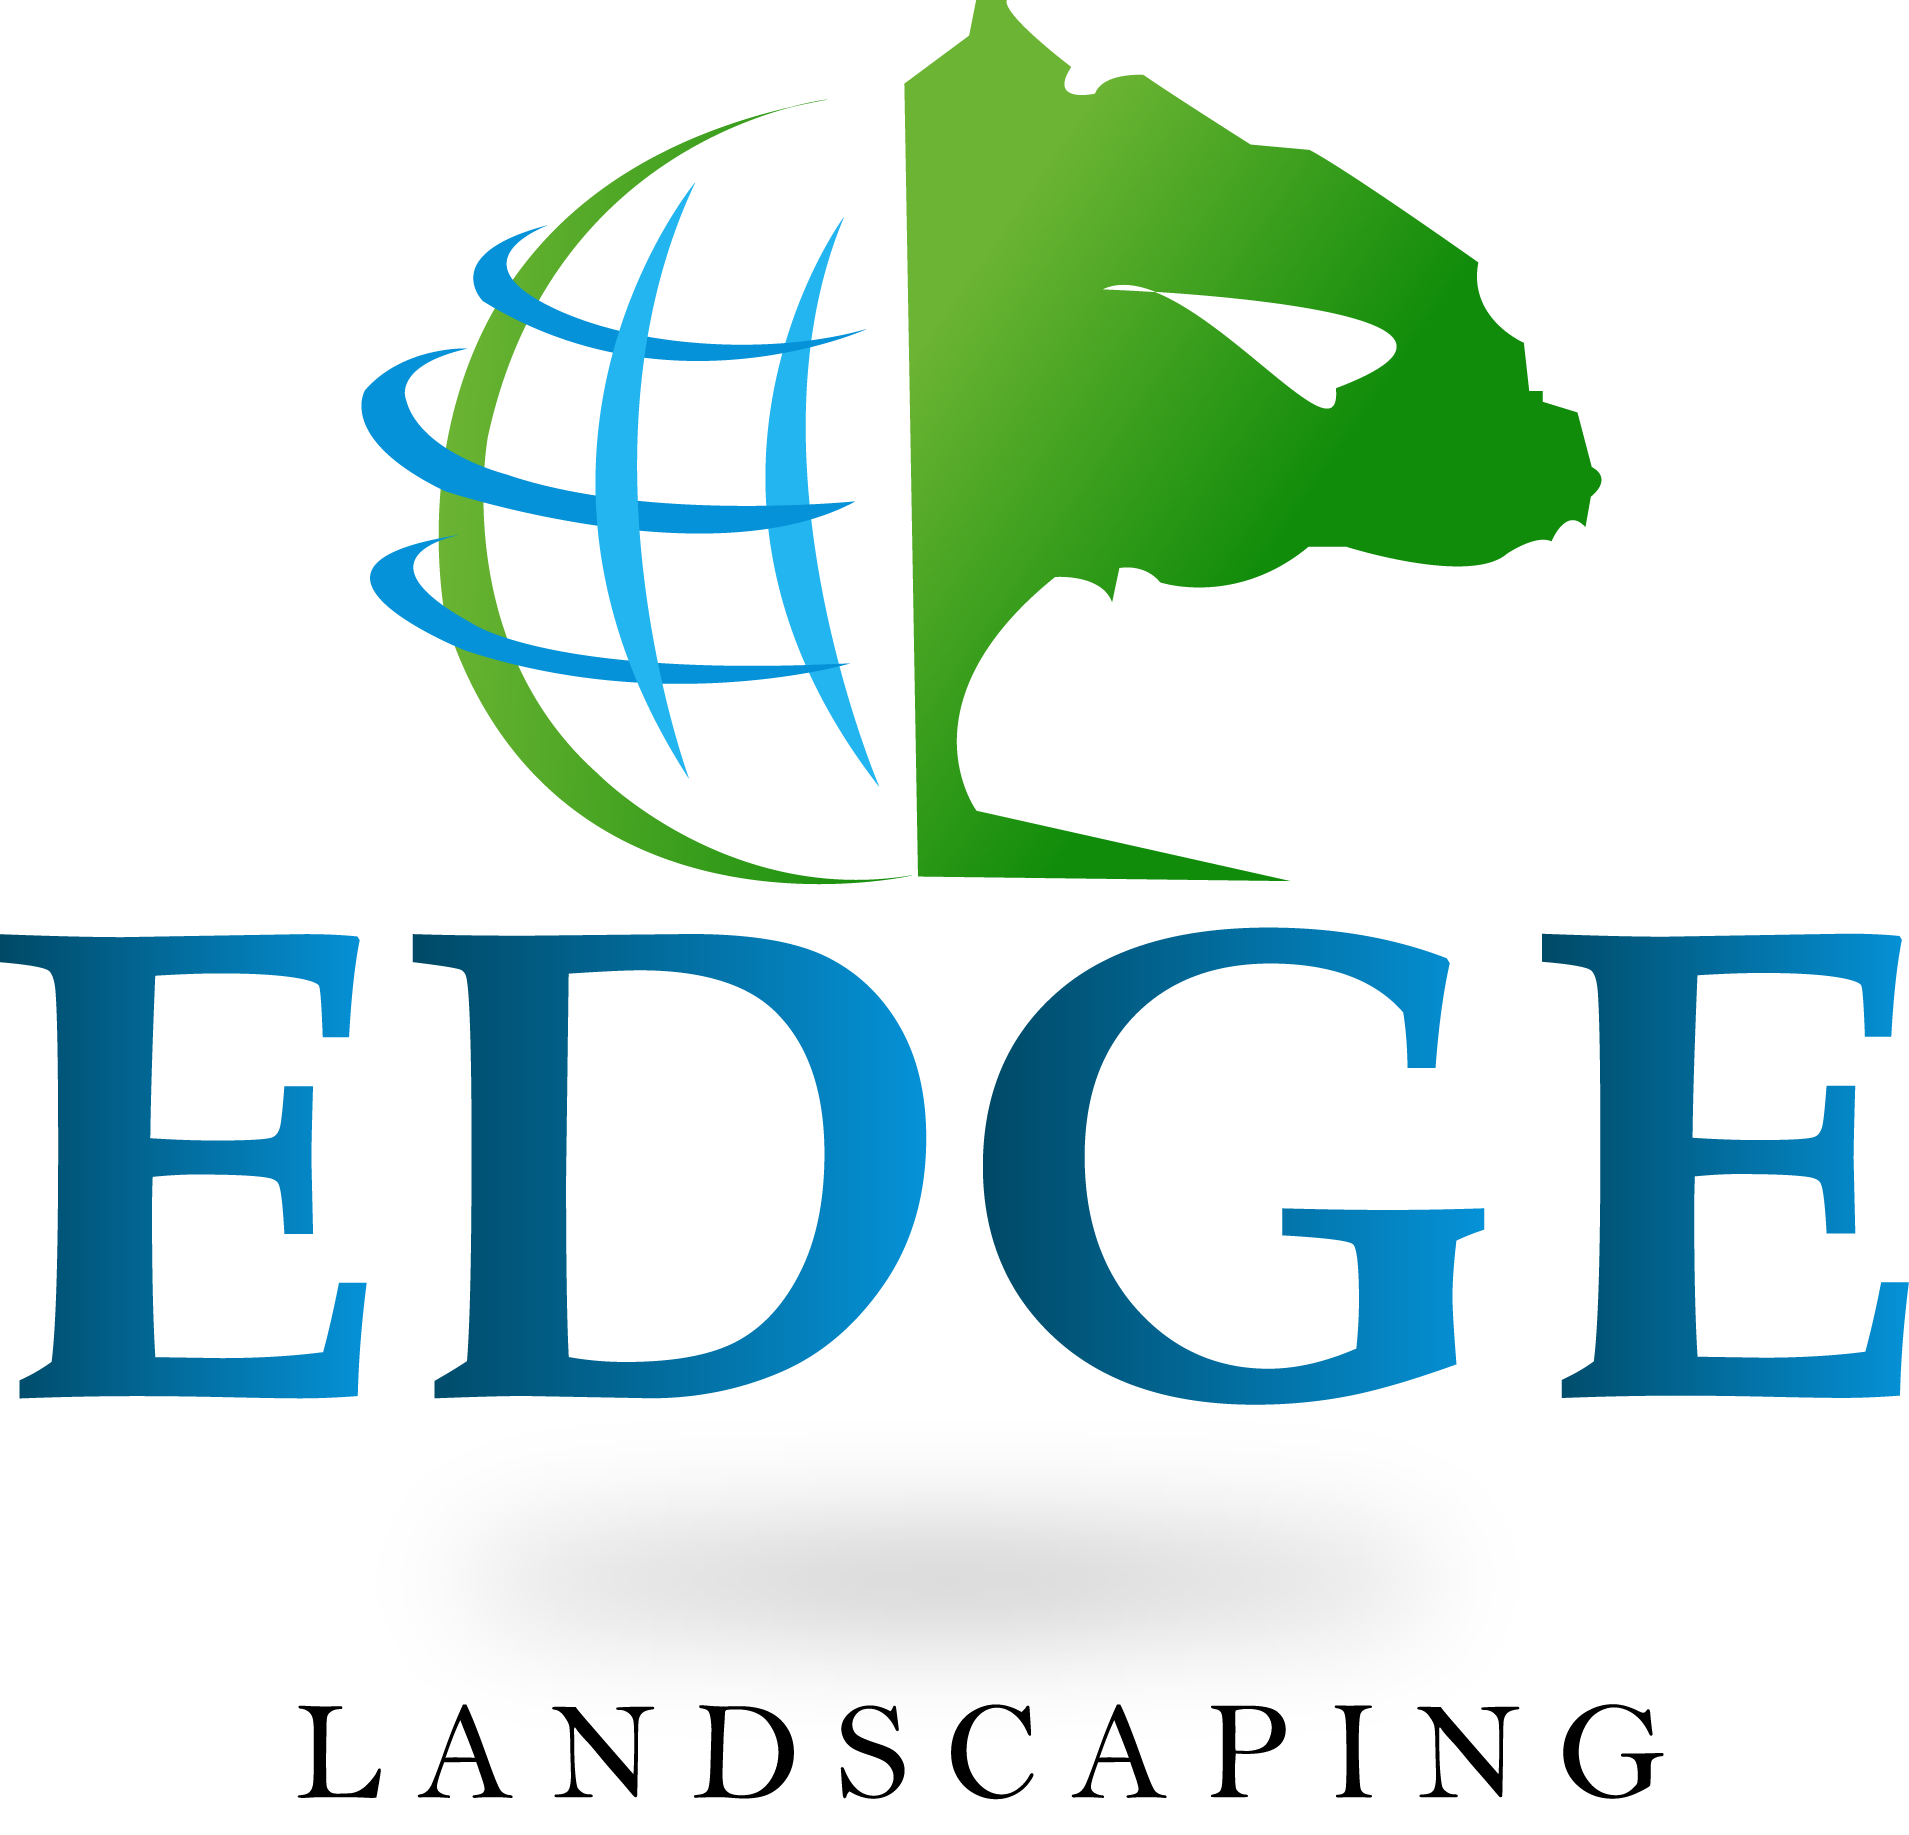 Logo Design by Saqib Hashmi - Entry No. 163 in the Logo Design Contest Inspiring Logo Design for Edge Landscaping.